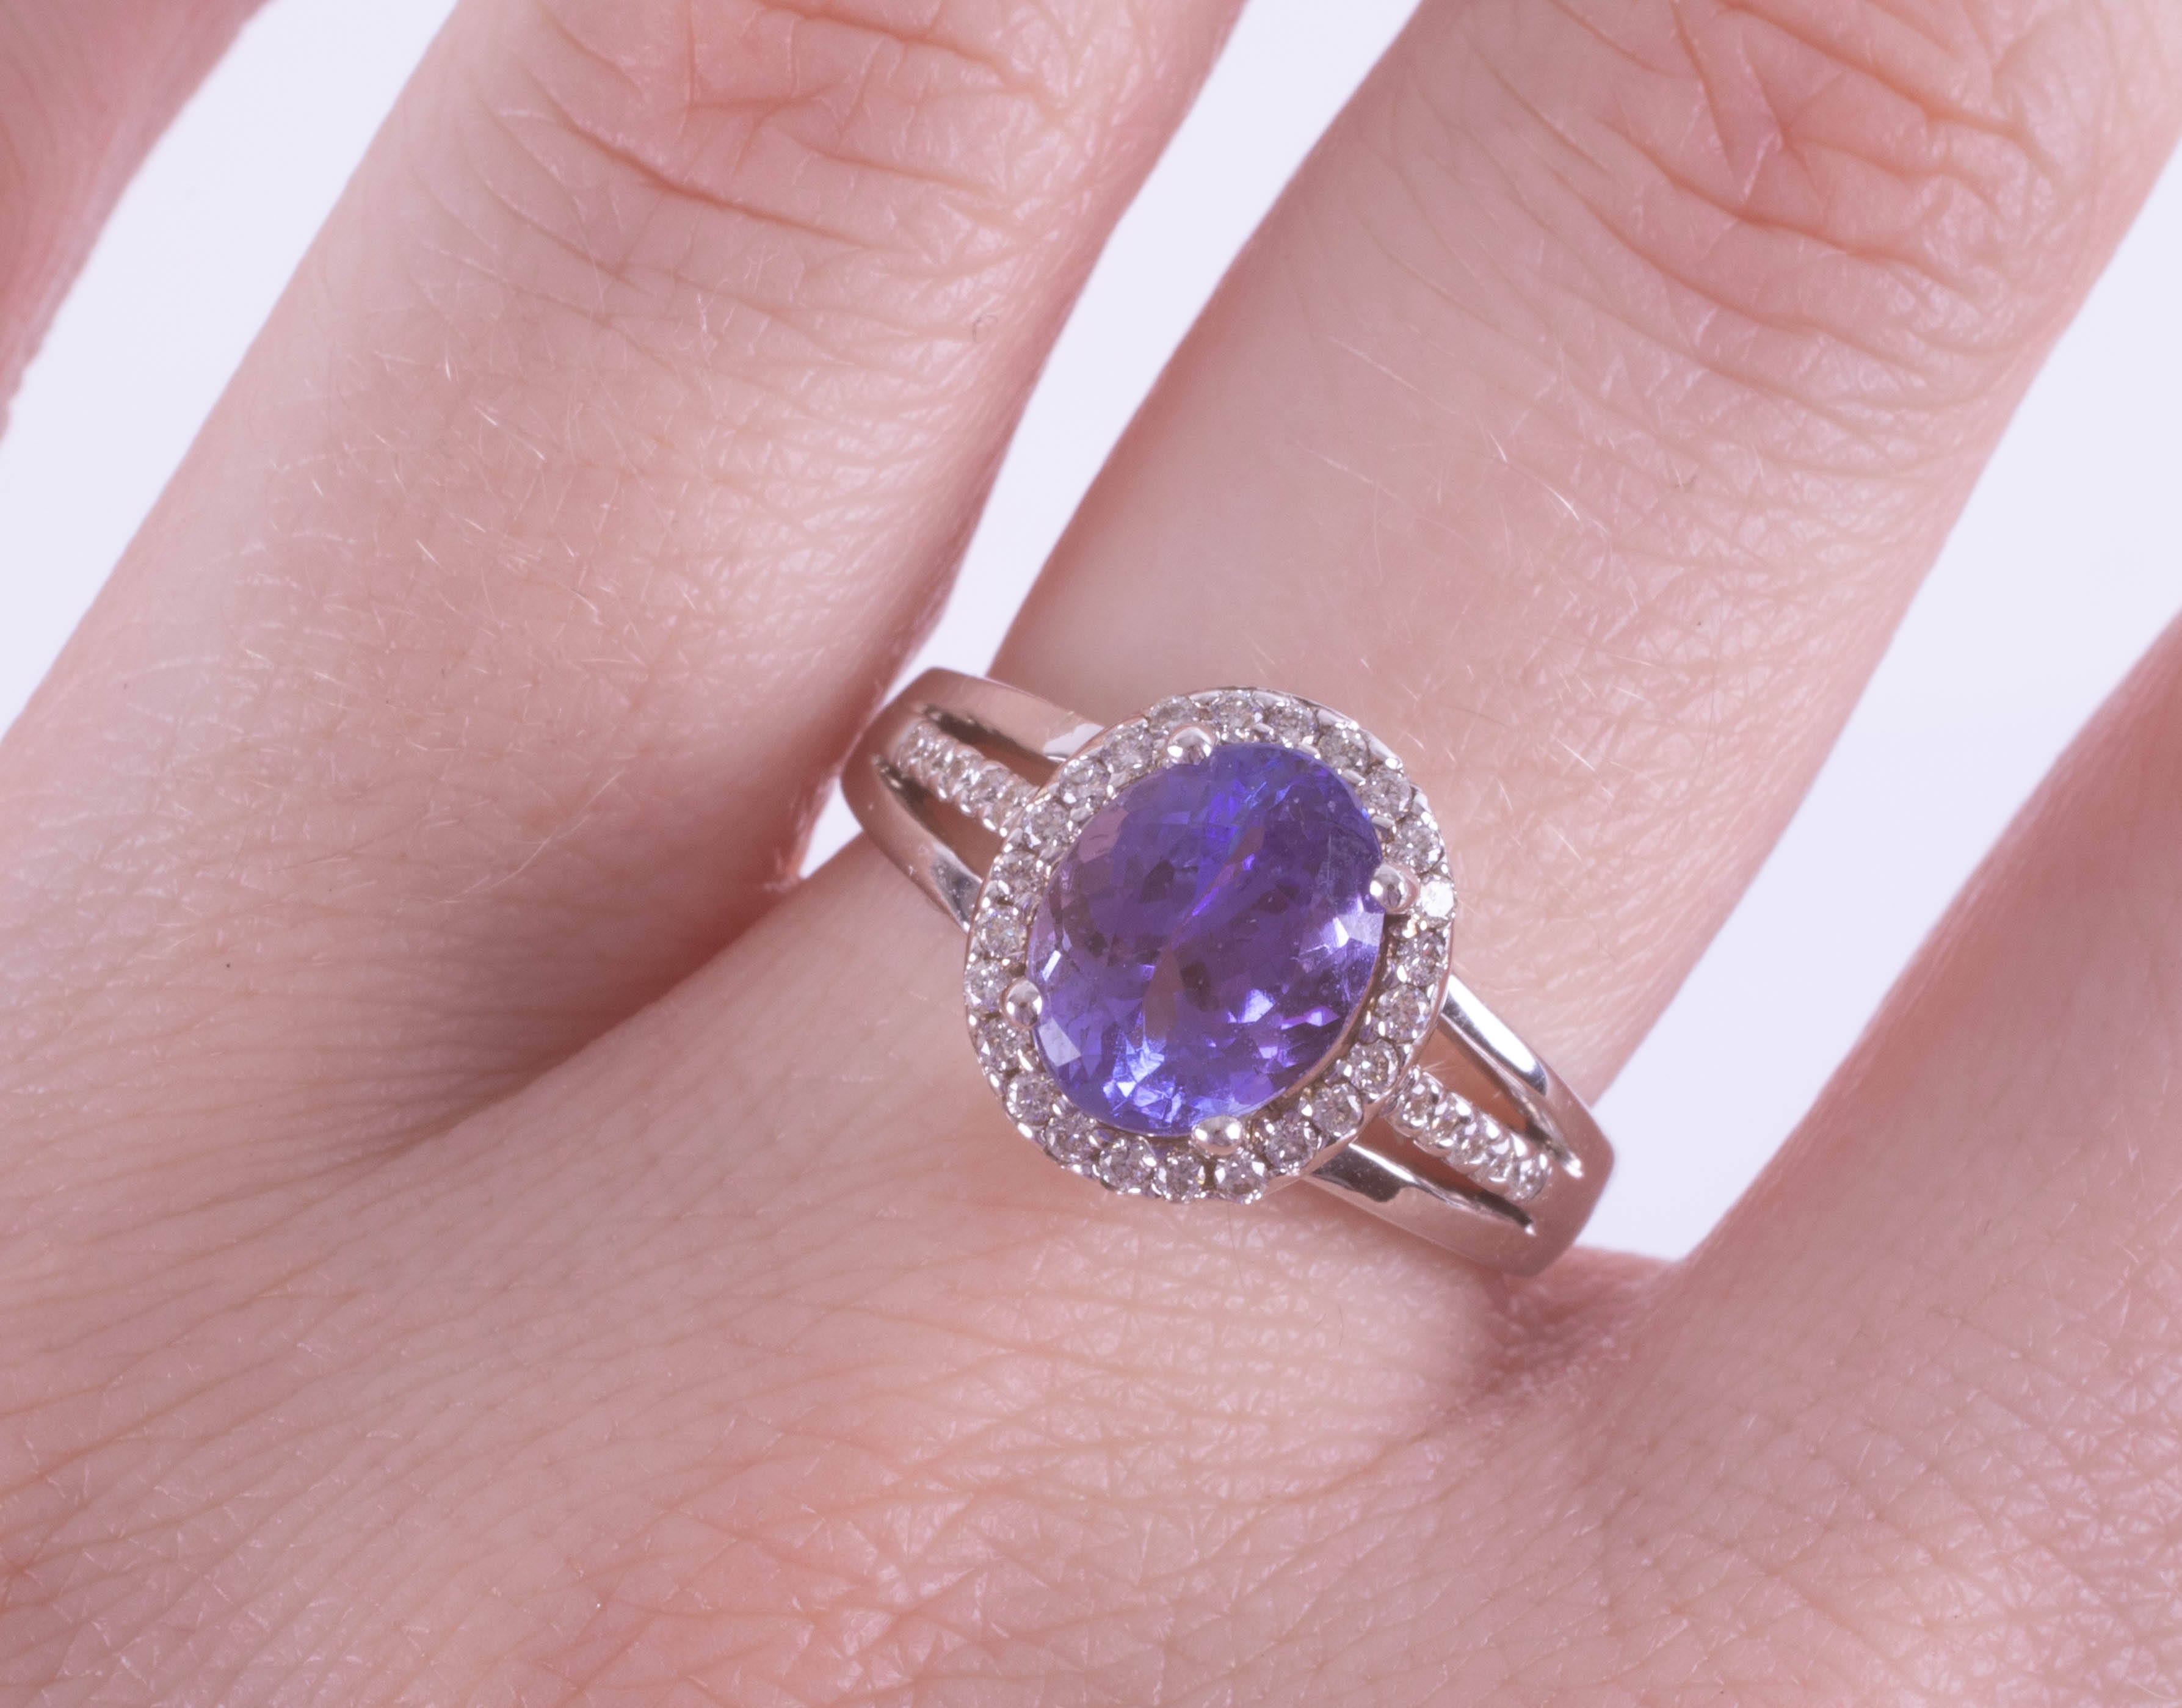 An 18ct white gold diamond and Tanzanite ring approx. 2.75ct, ring size N. - Image 2 of 2